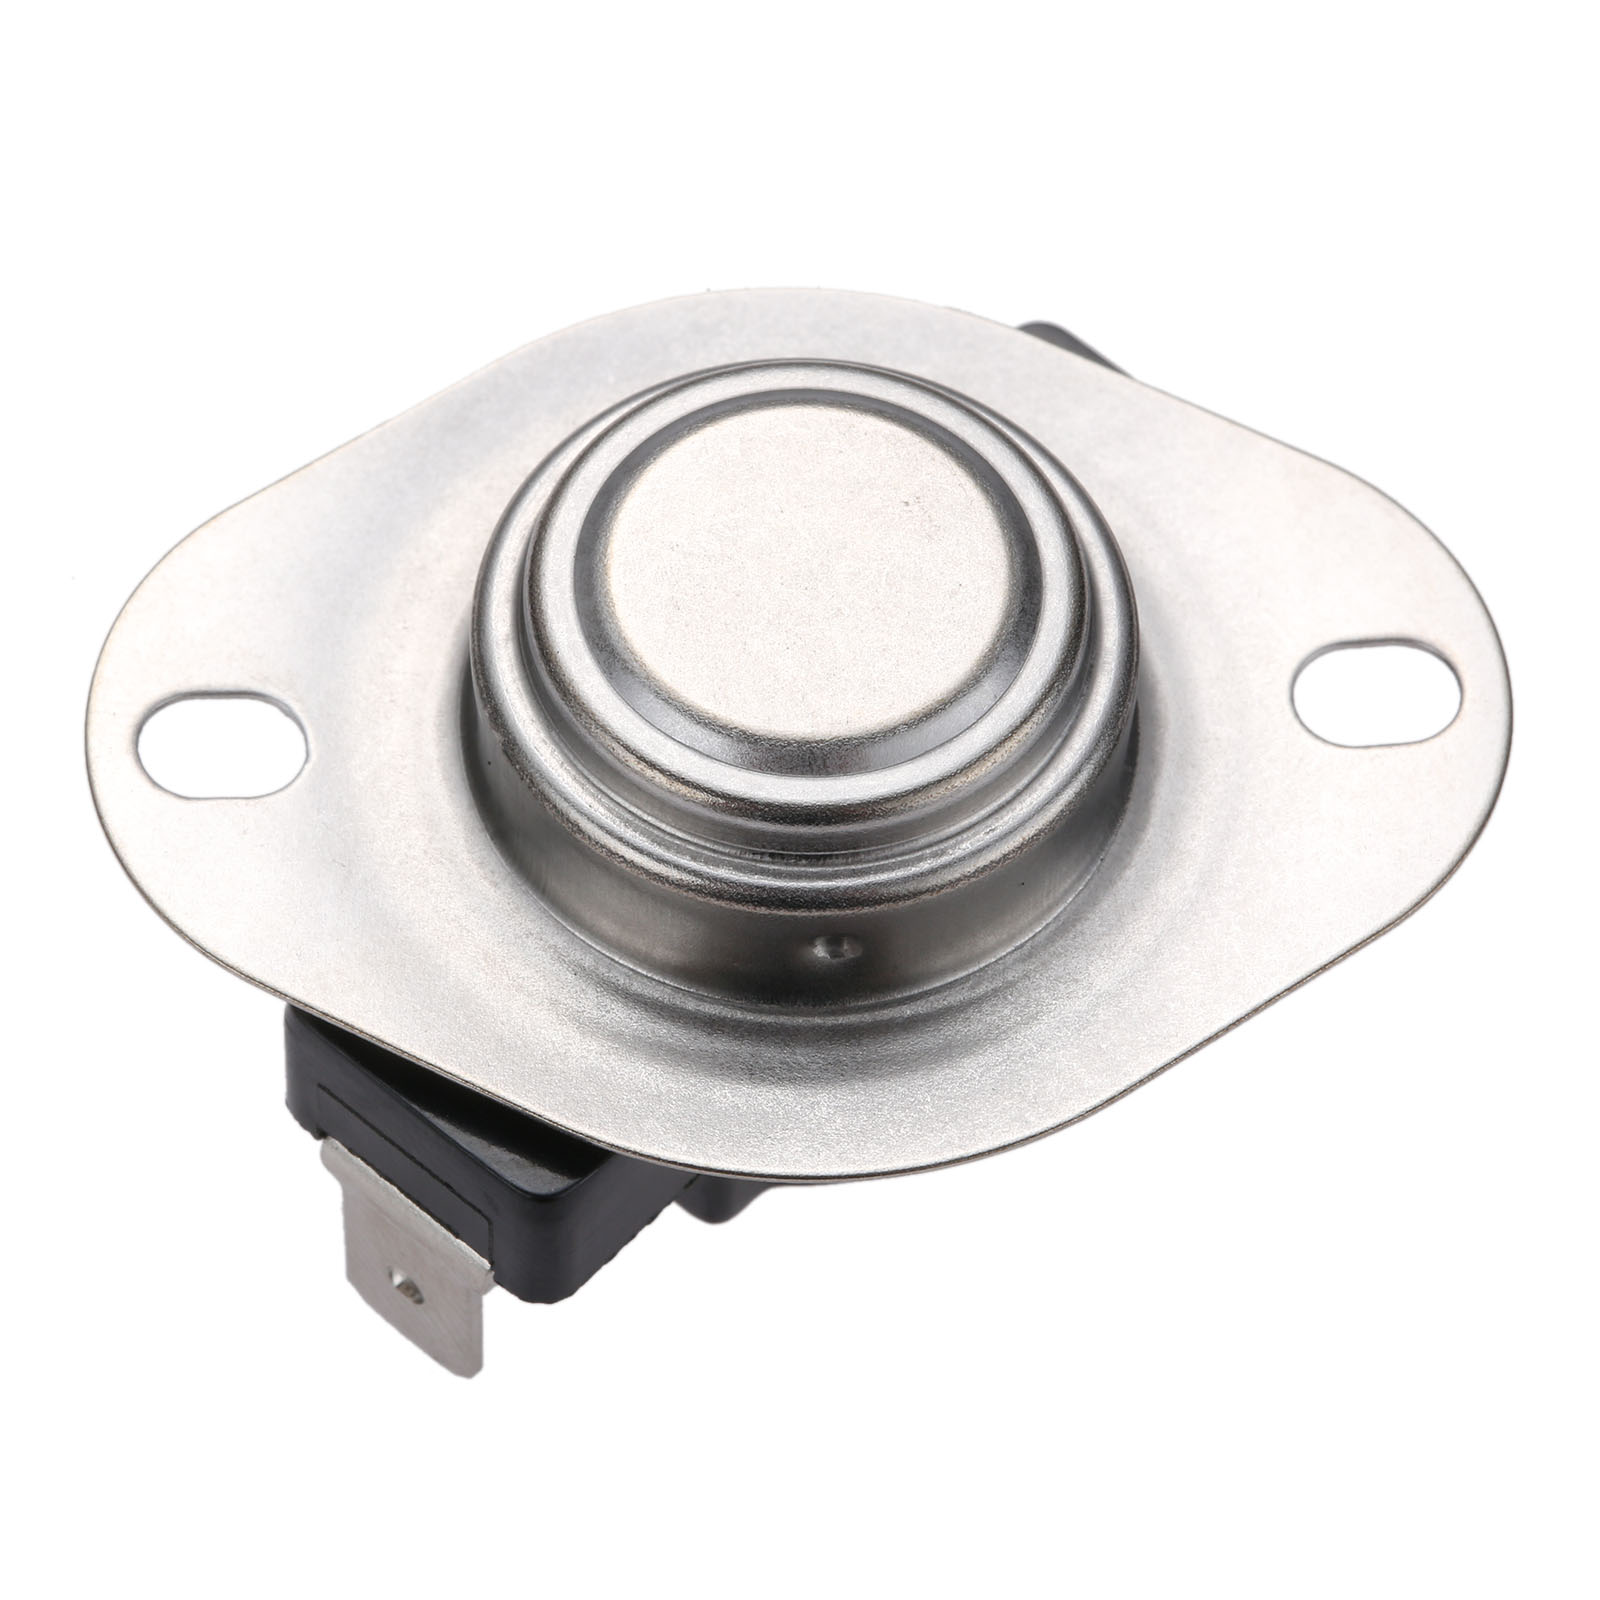 Thermostat for Maytag Dryers MDG6700AWW MDG9700AWM MDG9700AWW NED7200TW10